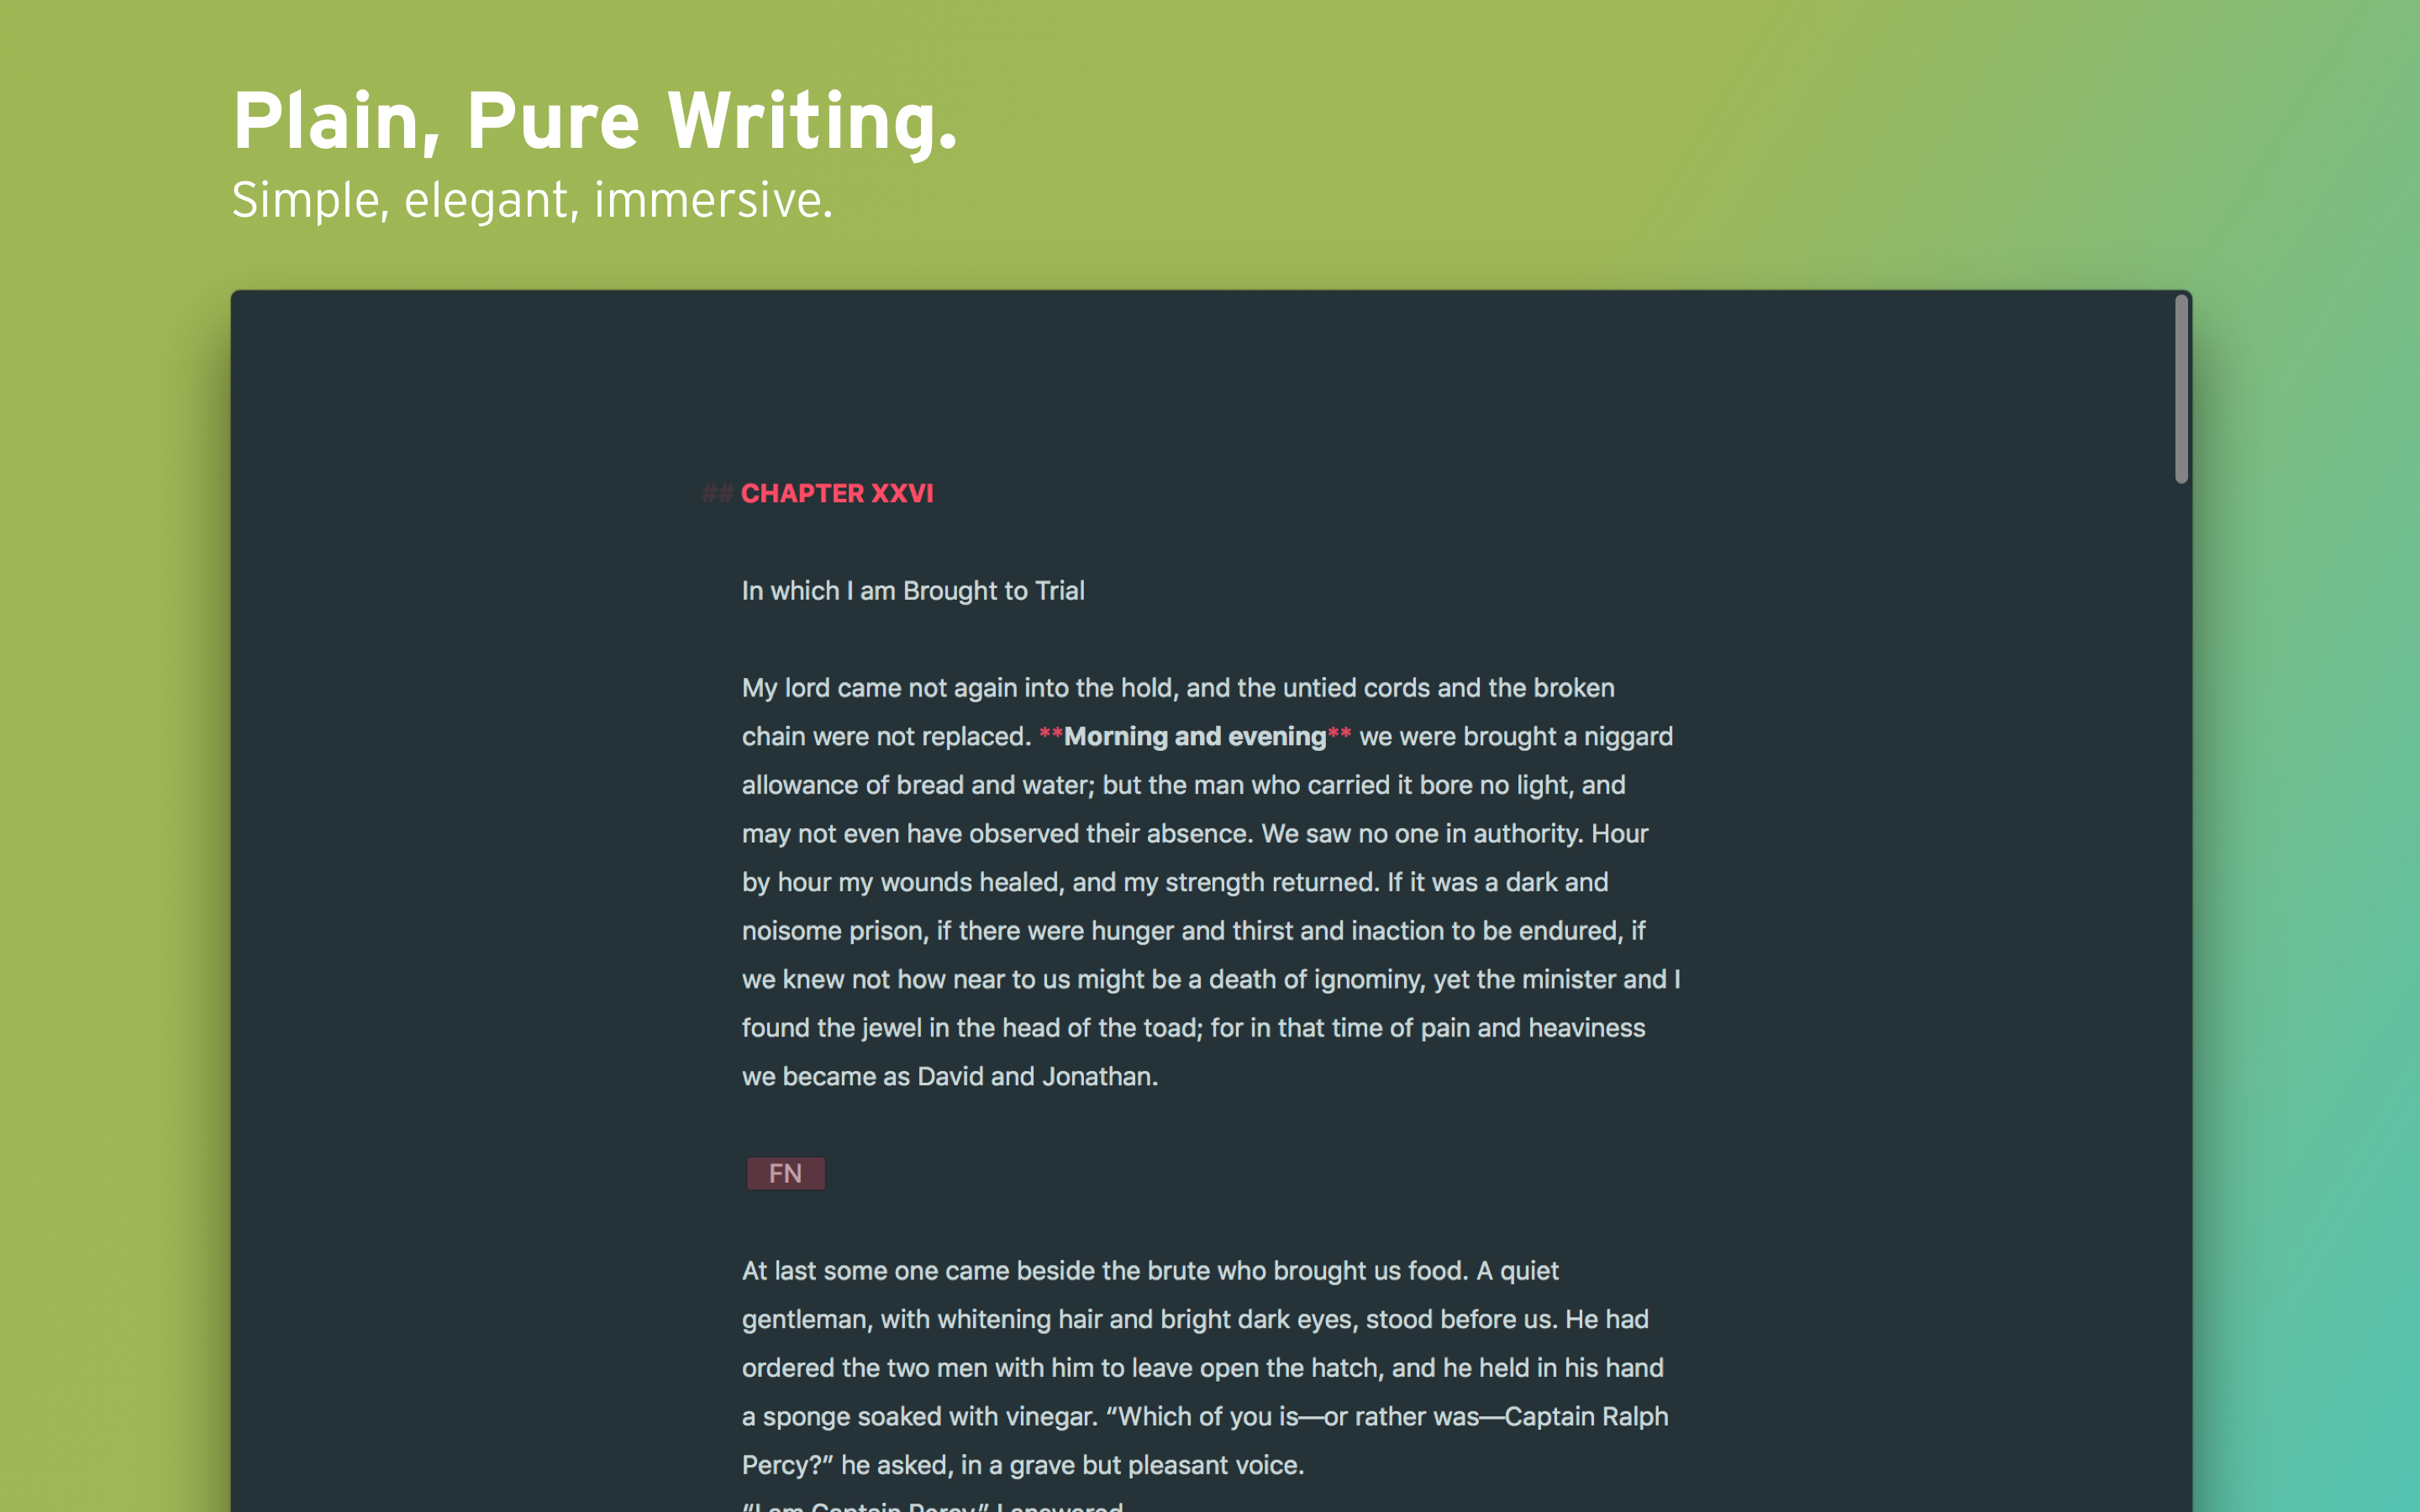 Plain, pure writing mode